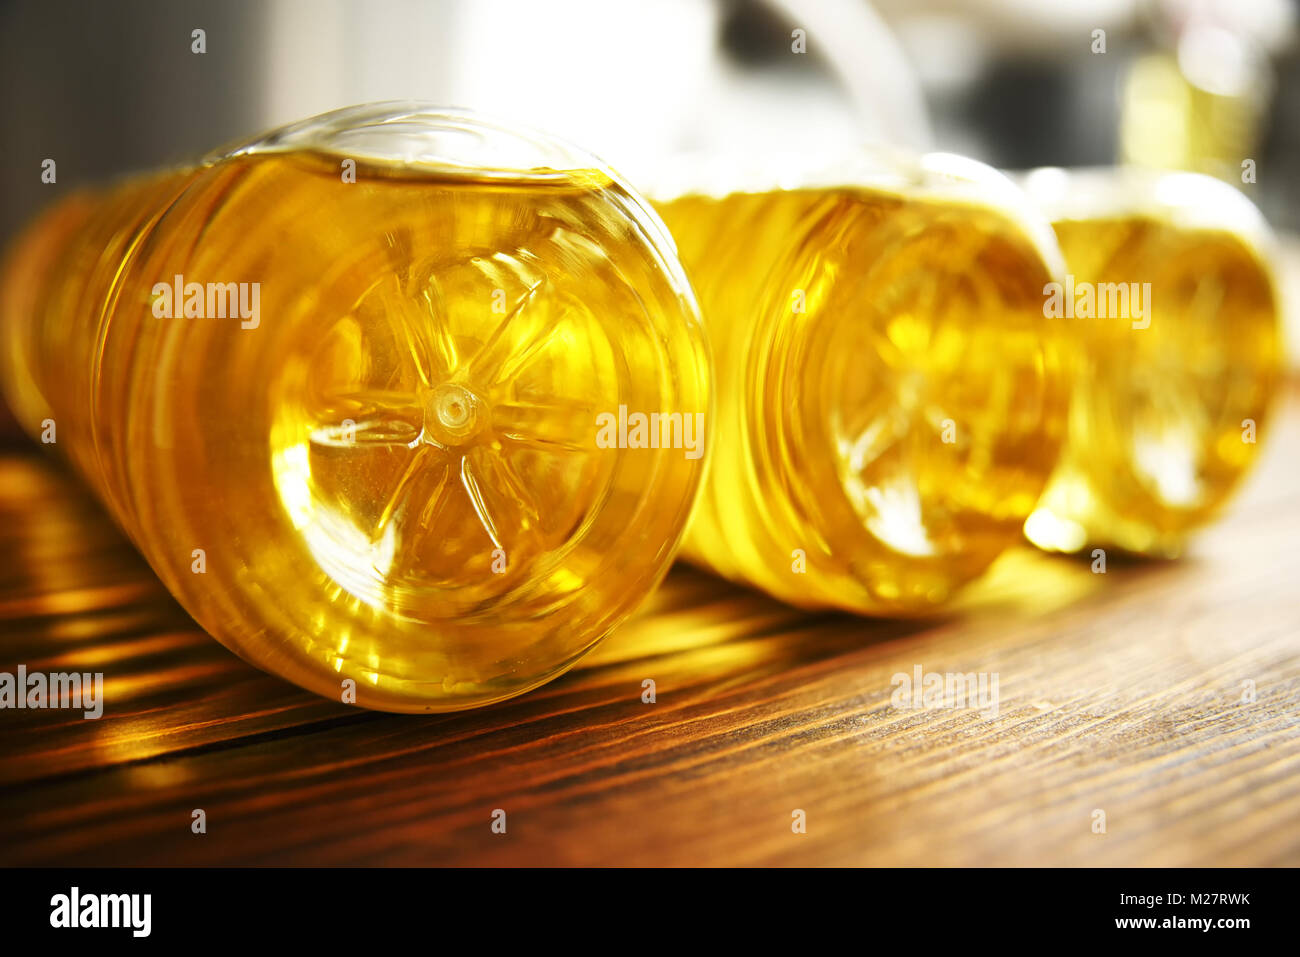 plastic bottles with sunflower oil on a wooden background close-up - Stock Image